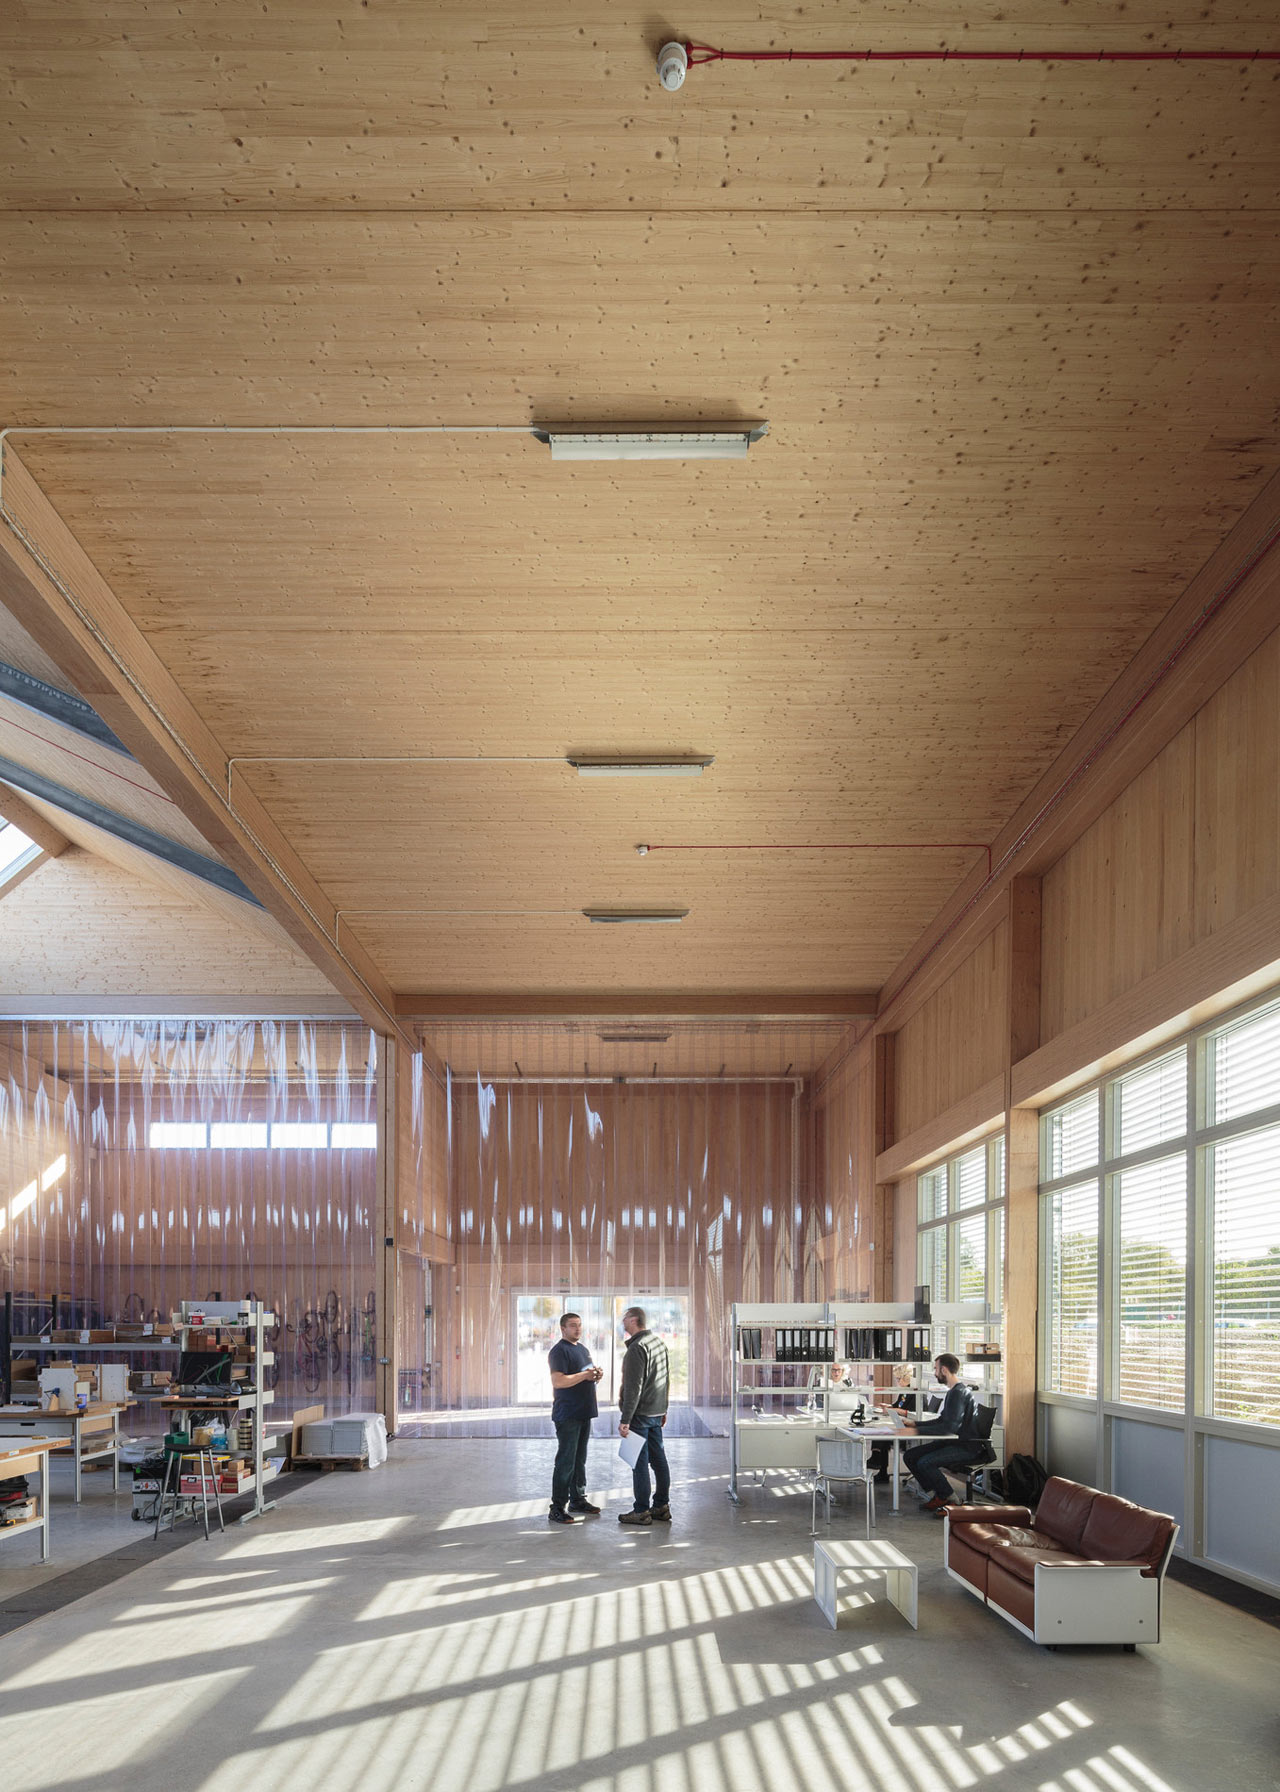 Vitsoe-Royal-Leamington-Spa-HQ-3a